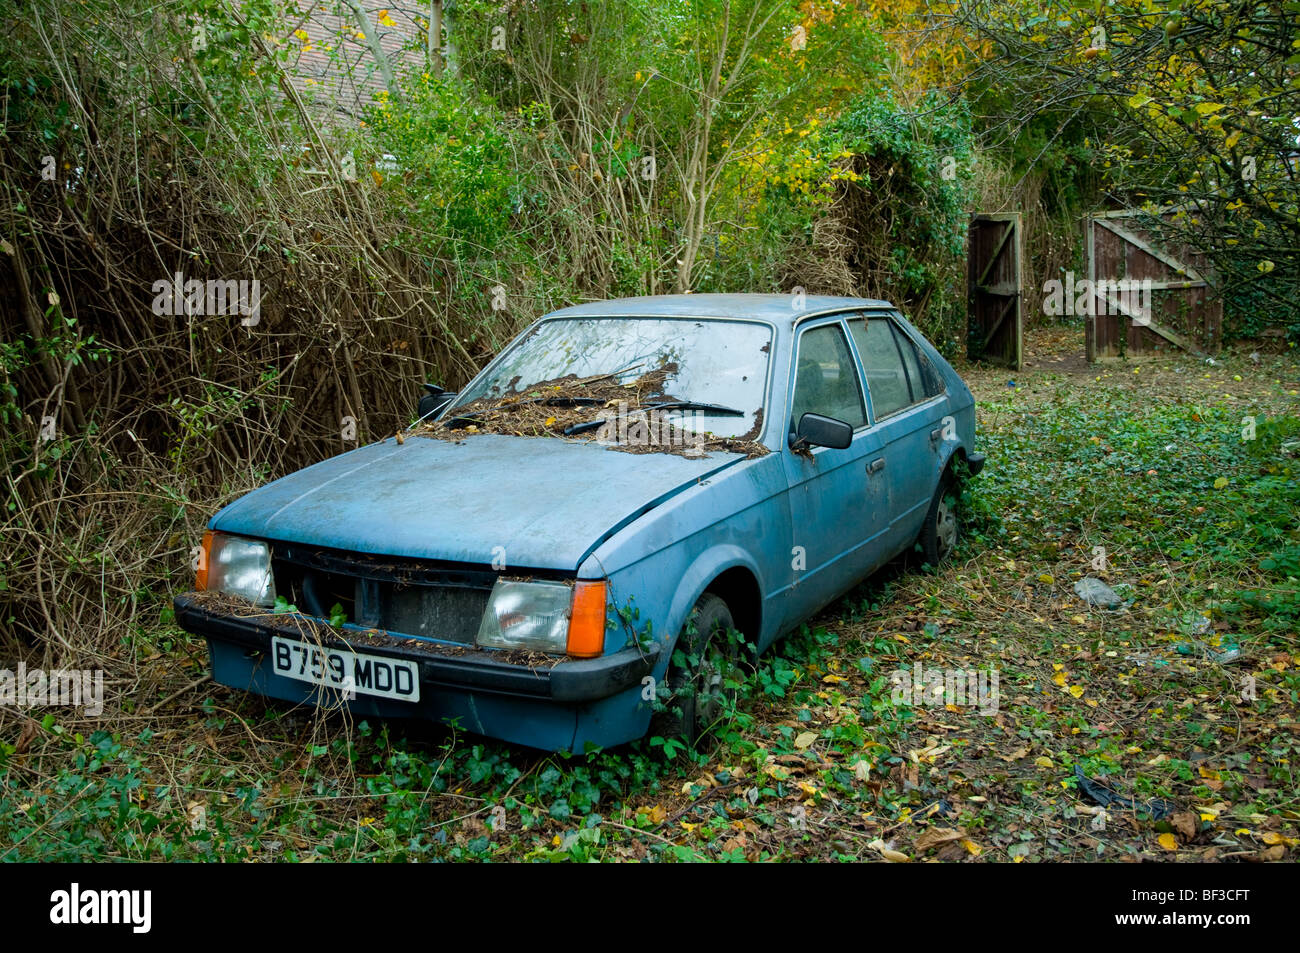 An Abandoned Car. - Stock Image